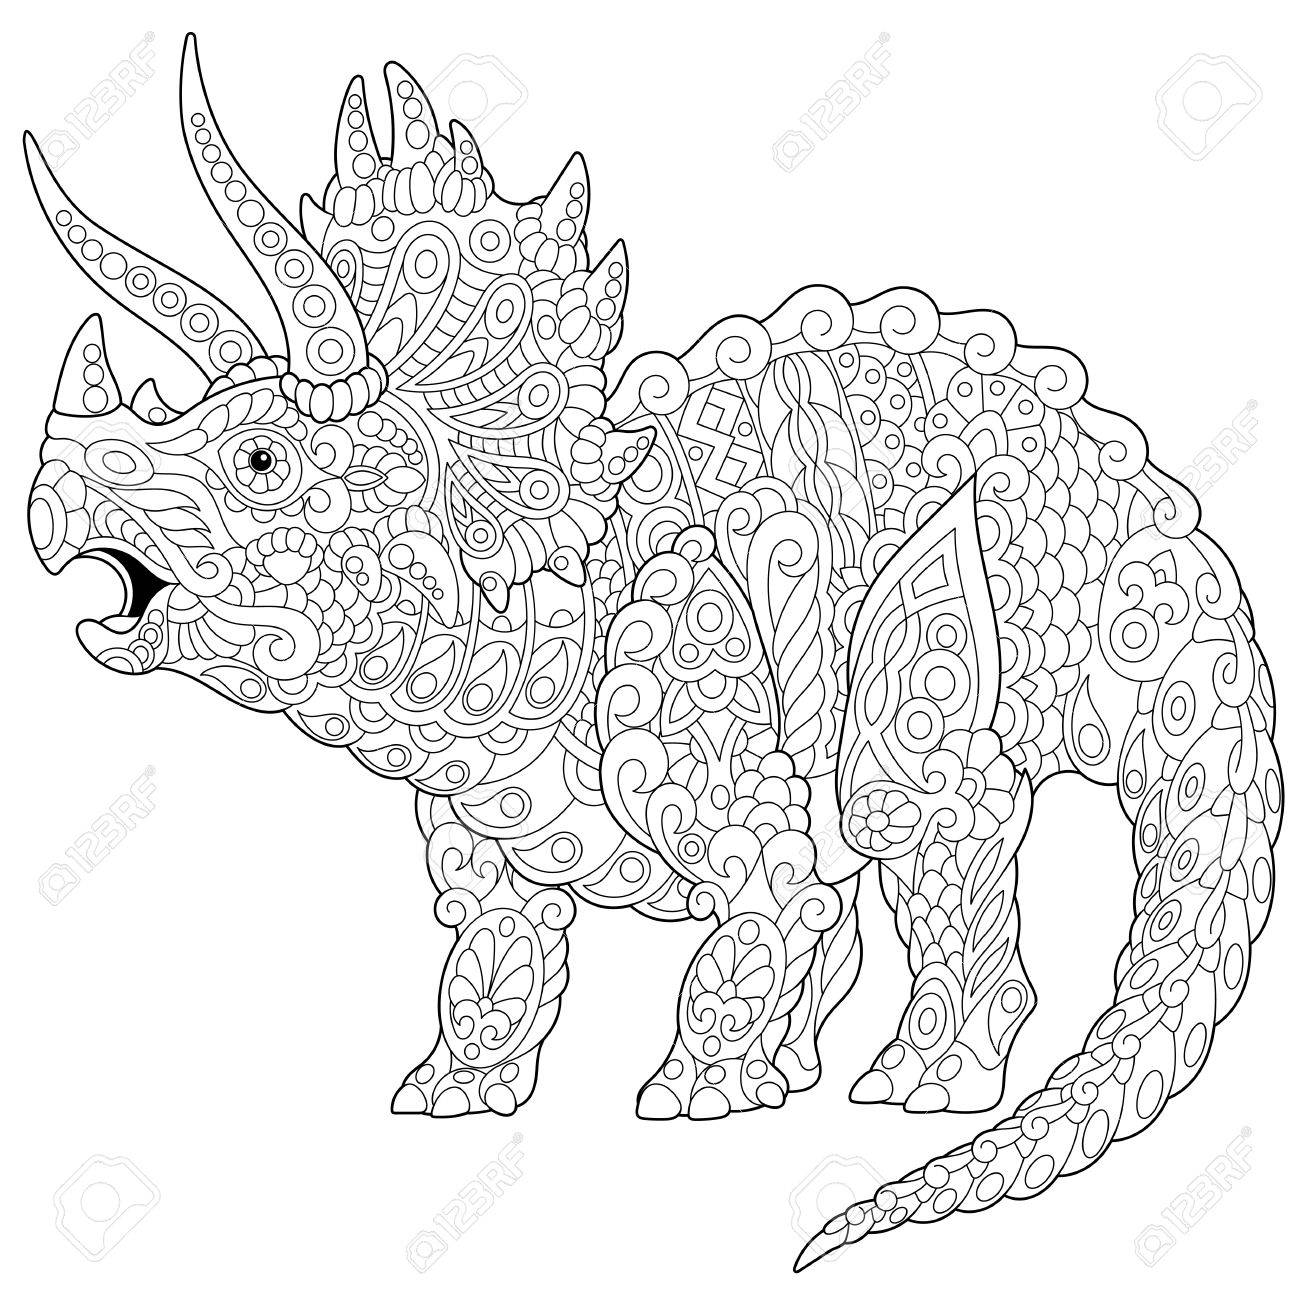 Stylized triceratops dinosaur living at the end of the Cretaceous period, isolated on white background. - 72670007